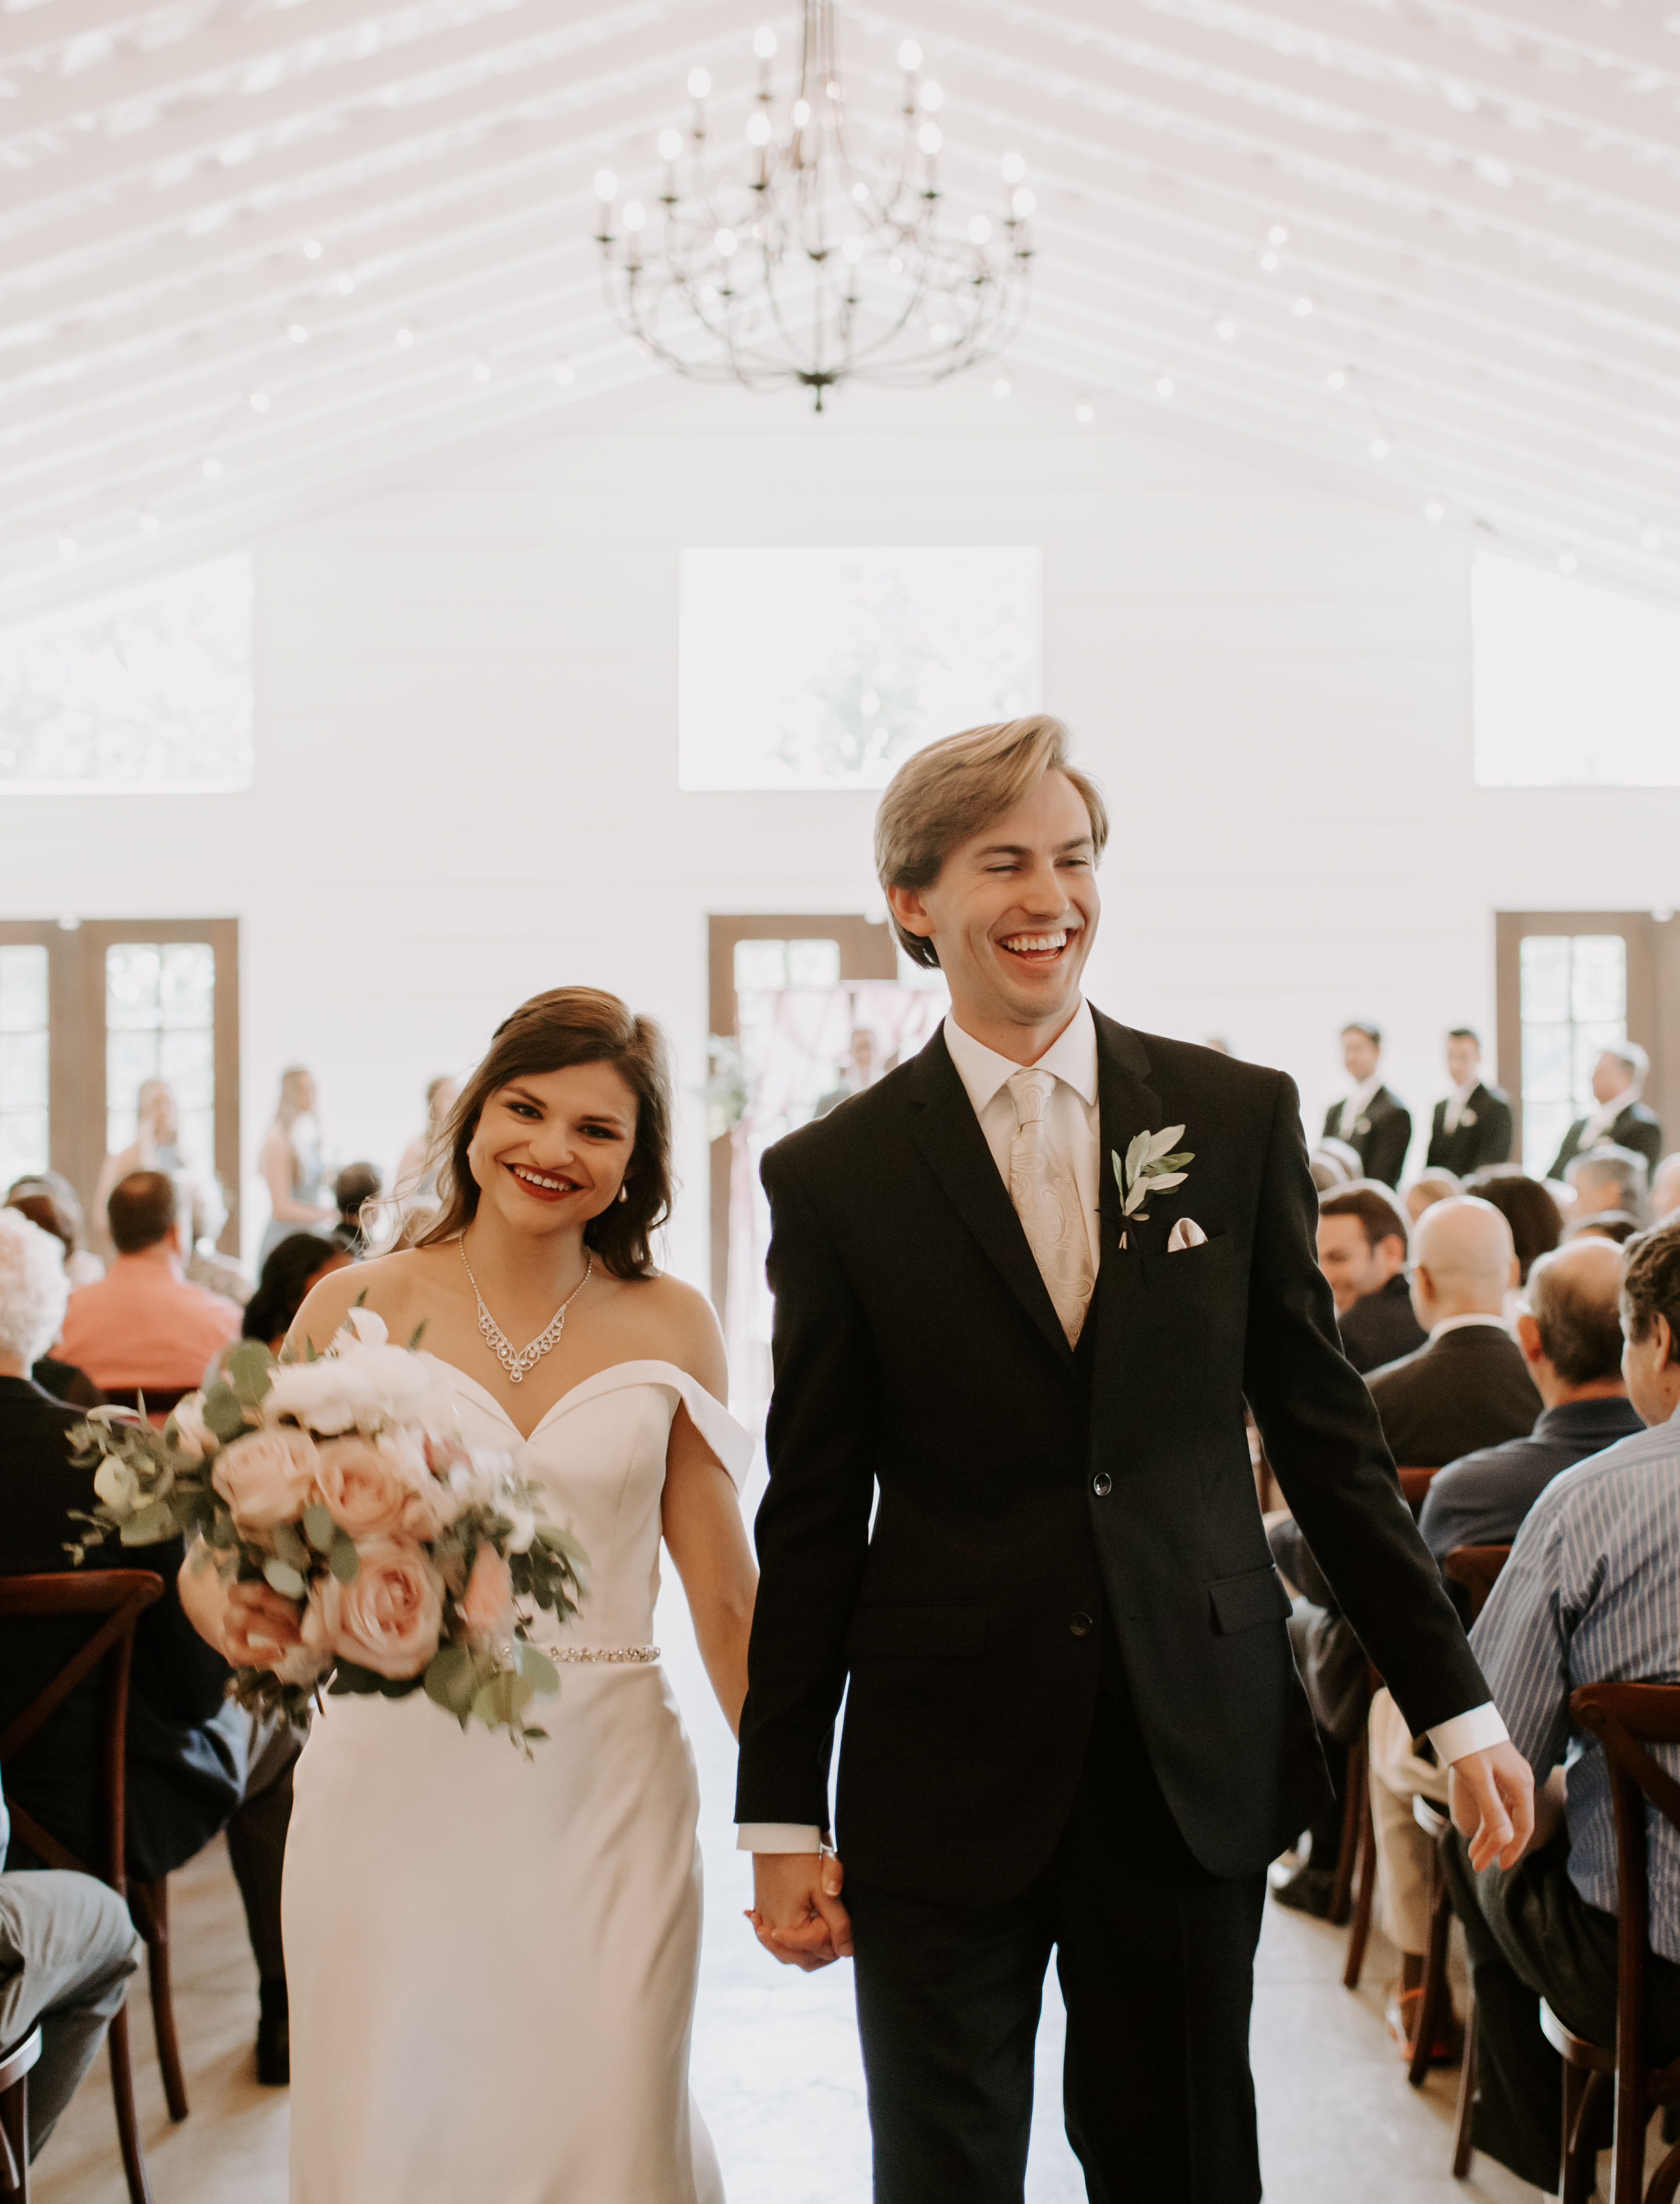 Bride and Groom walk down the aisle at The Loft at Stone Oak